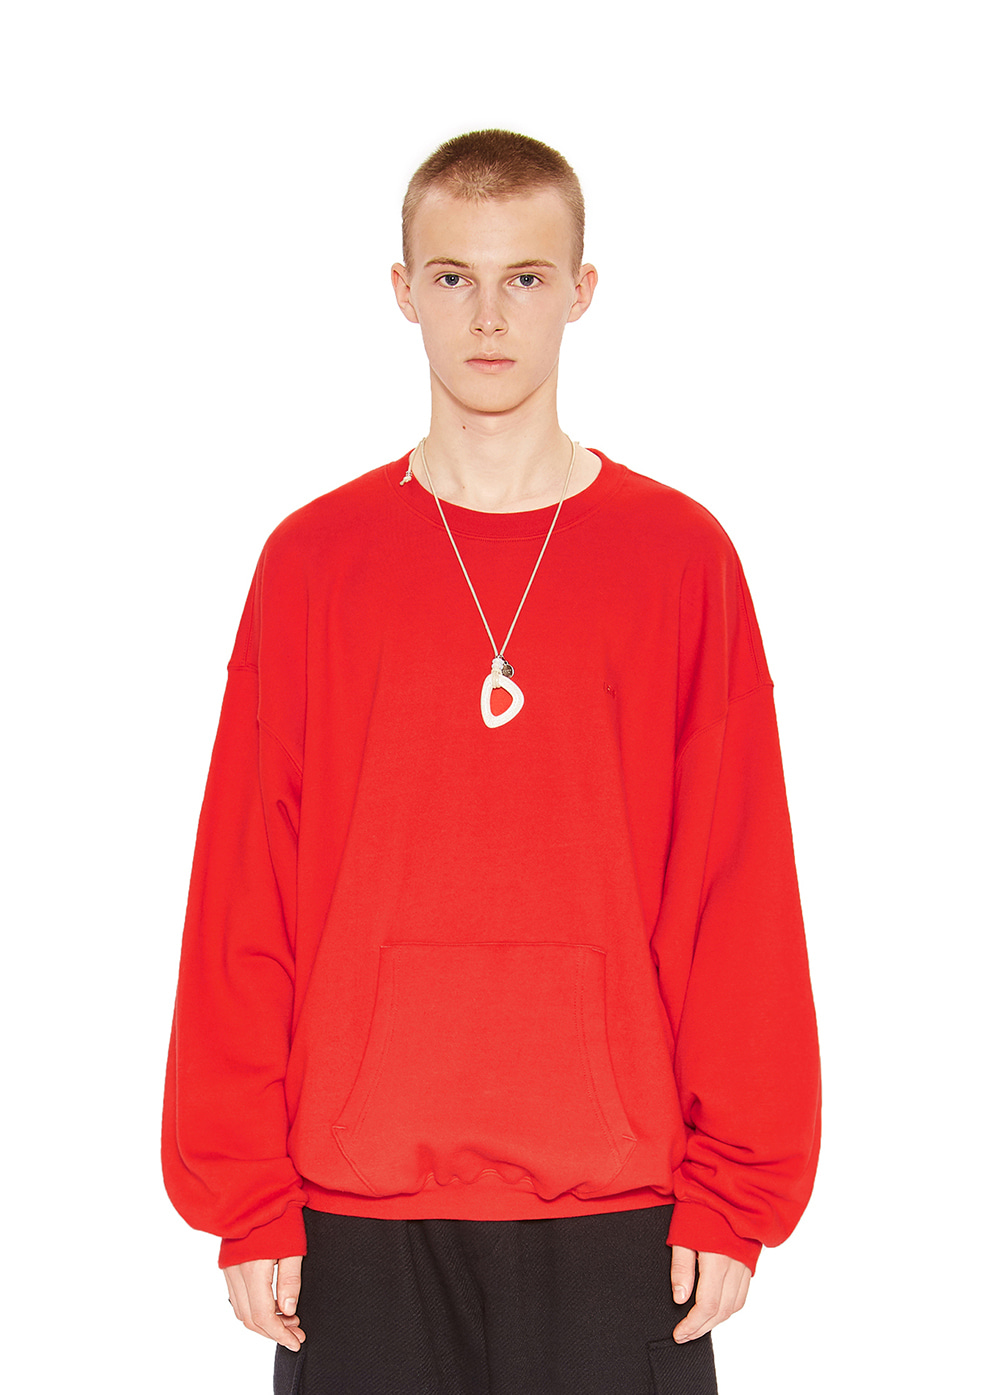 LIFUL LOGO POCKET SWEATSHIRT red